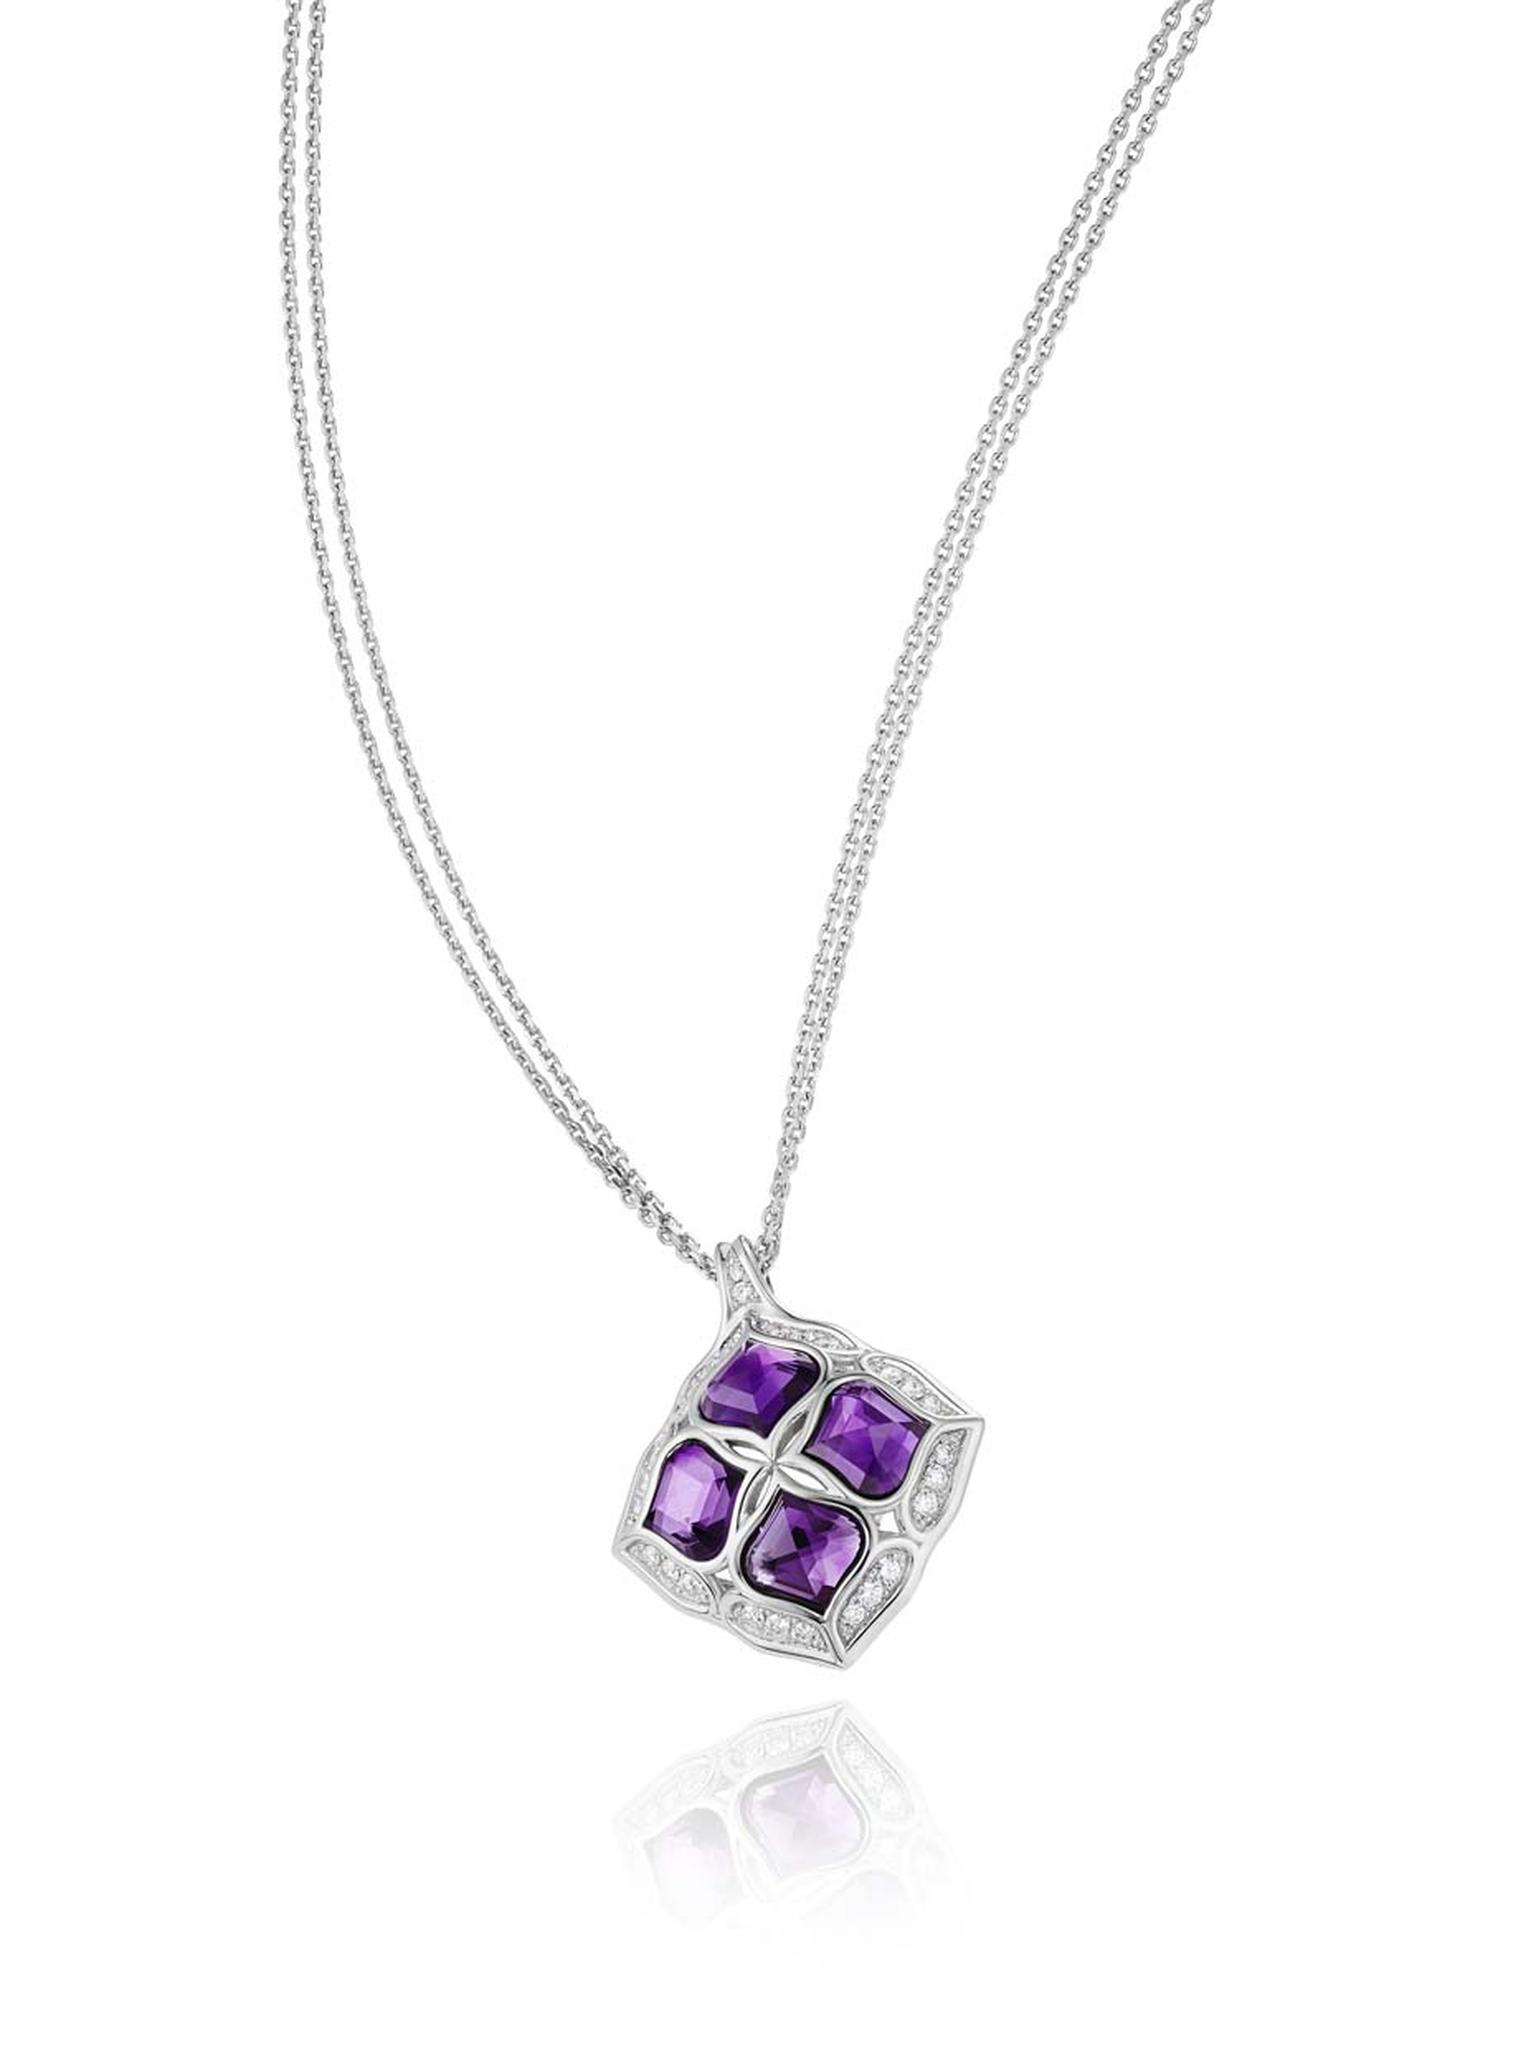 Chopard Imperiale pendant featuring a faceted amethyst surrounded by diamond-encrusted arabesque motifs.